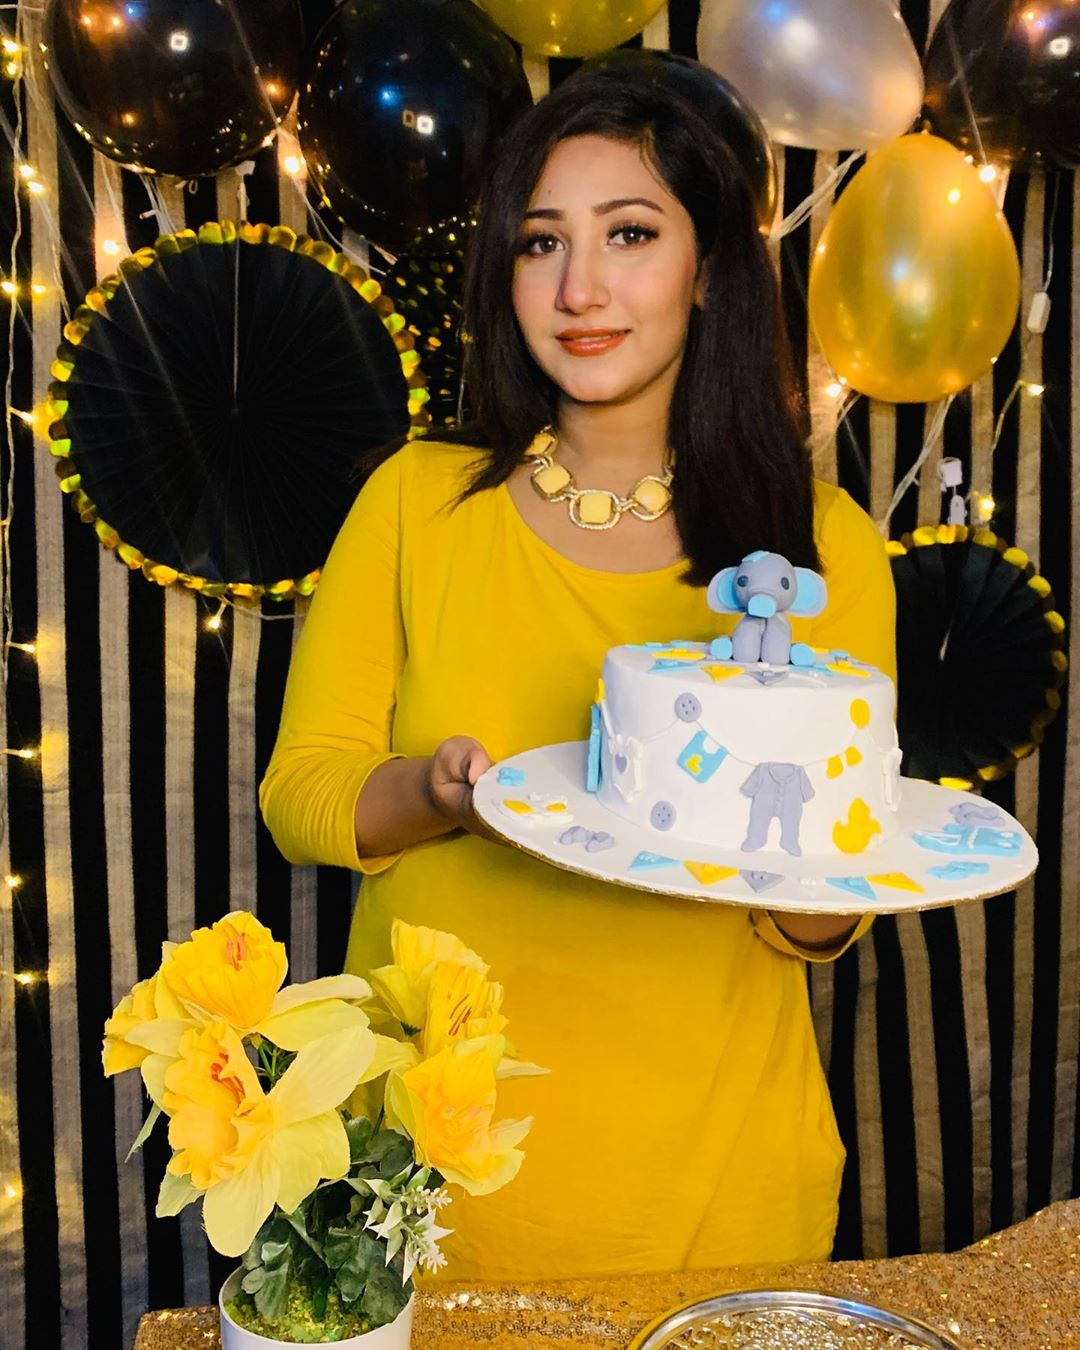 Actress Pari Hashmi Blessed with a Second Baby Boy - Adorable Pictures